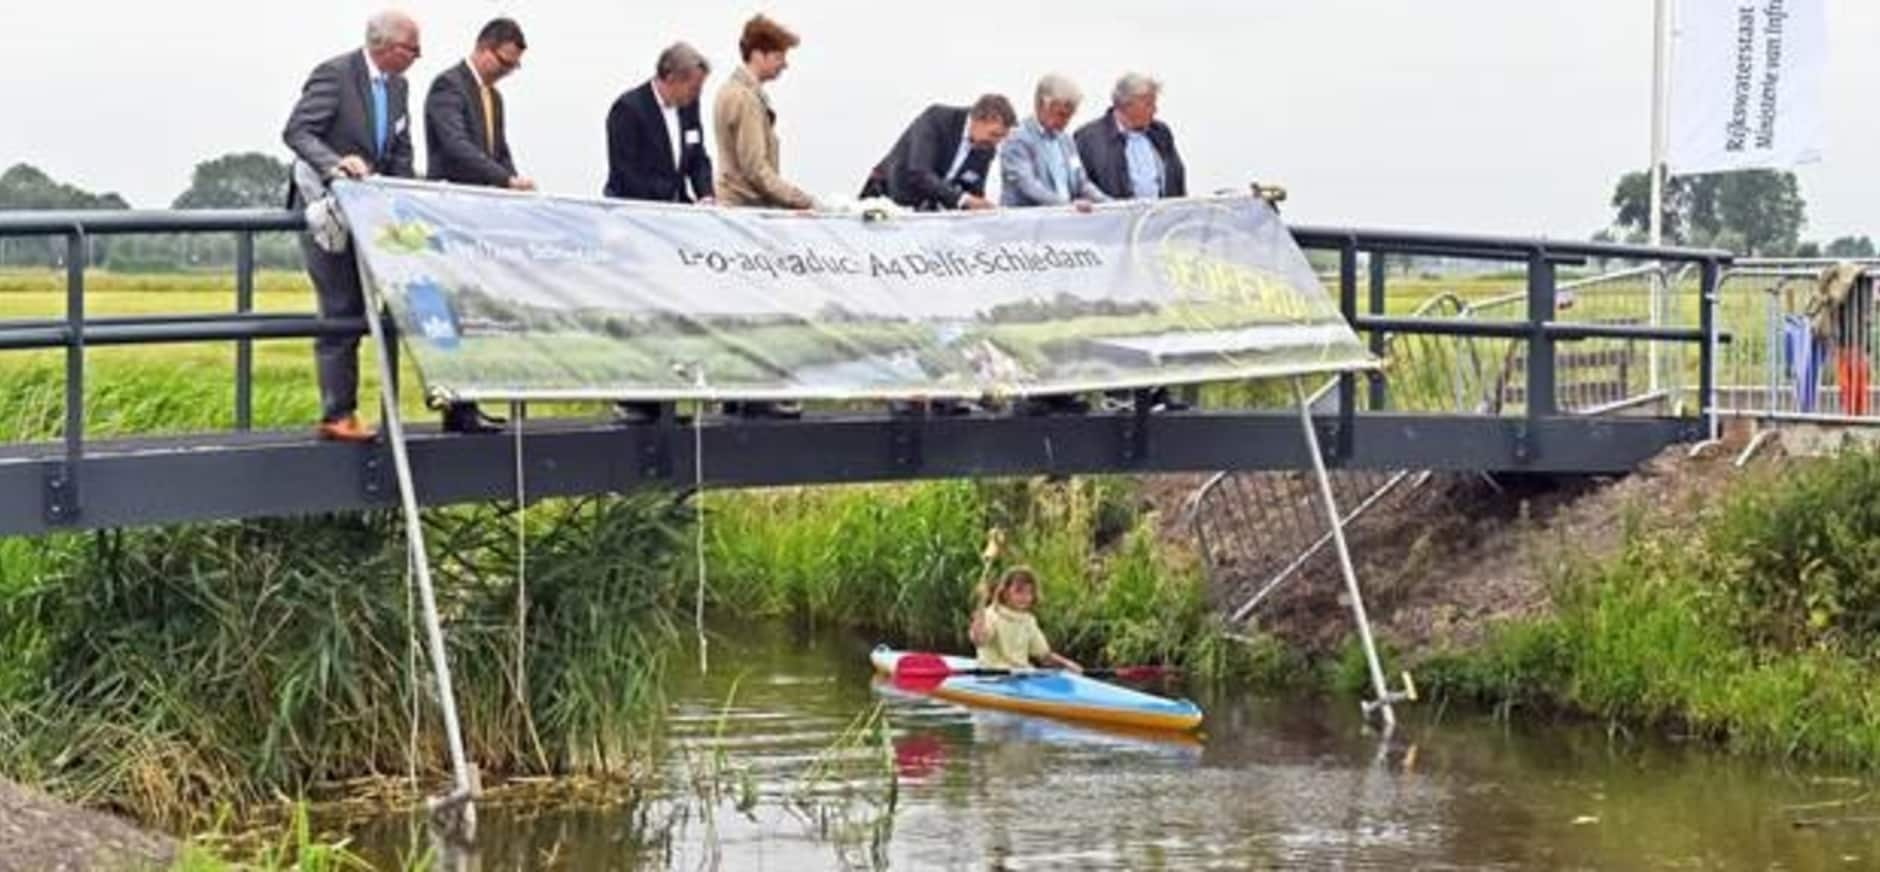 Grootste eco-aquaduct A4 Delft-Schiedam geopend